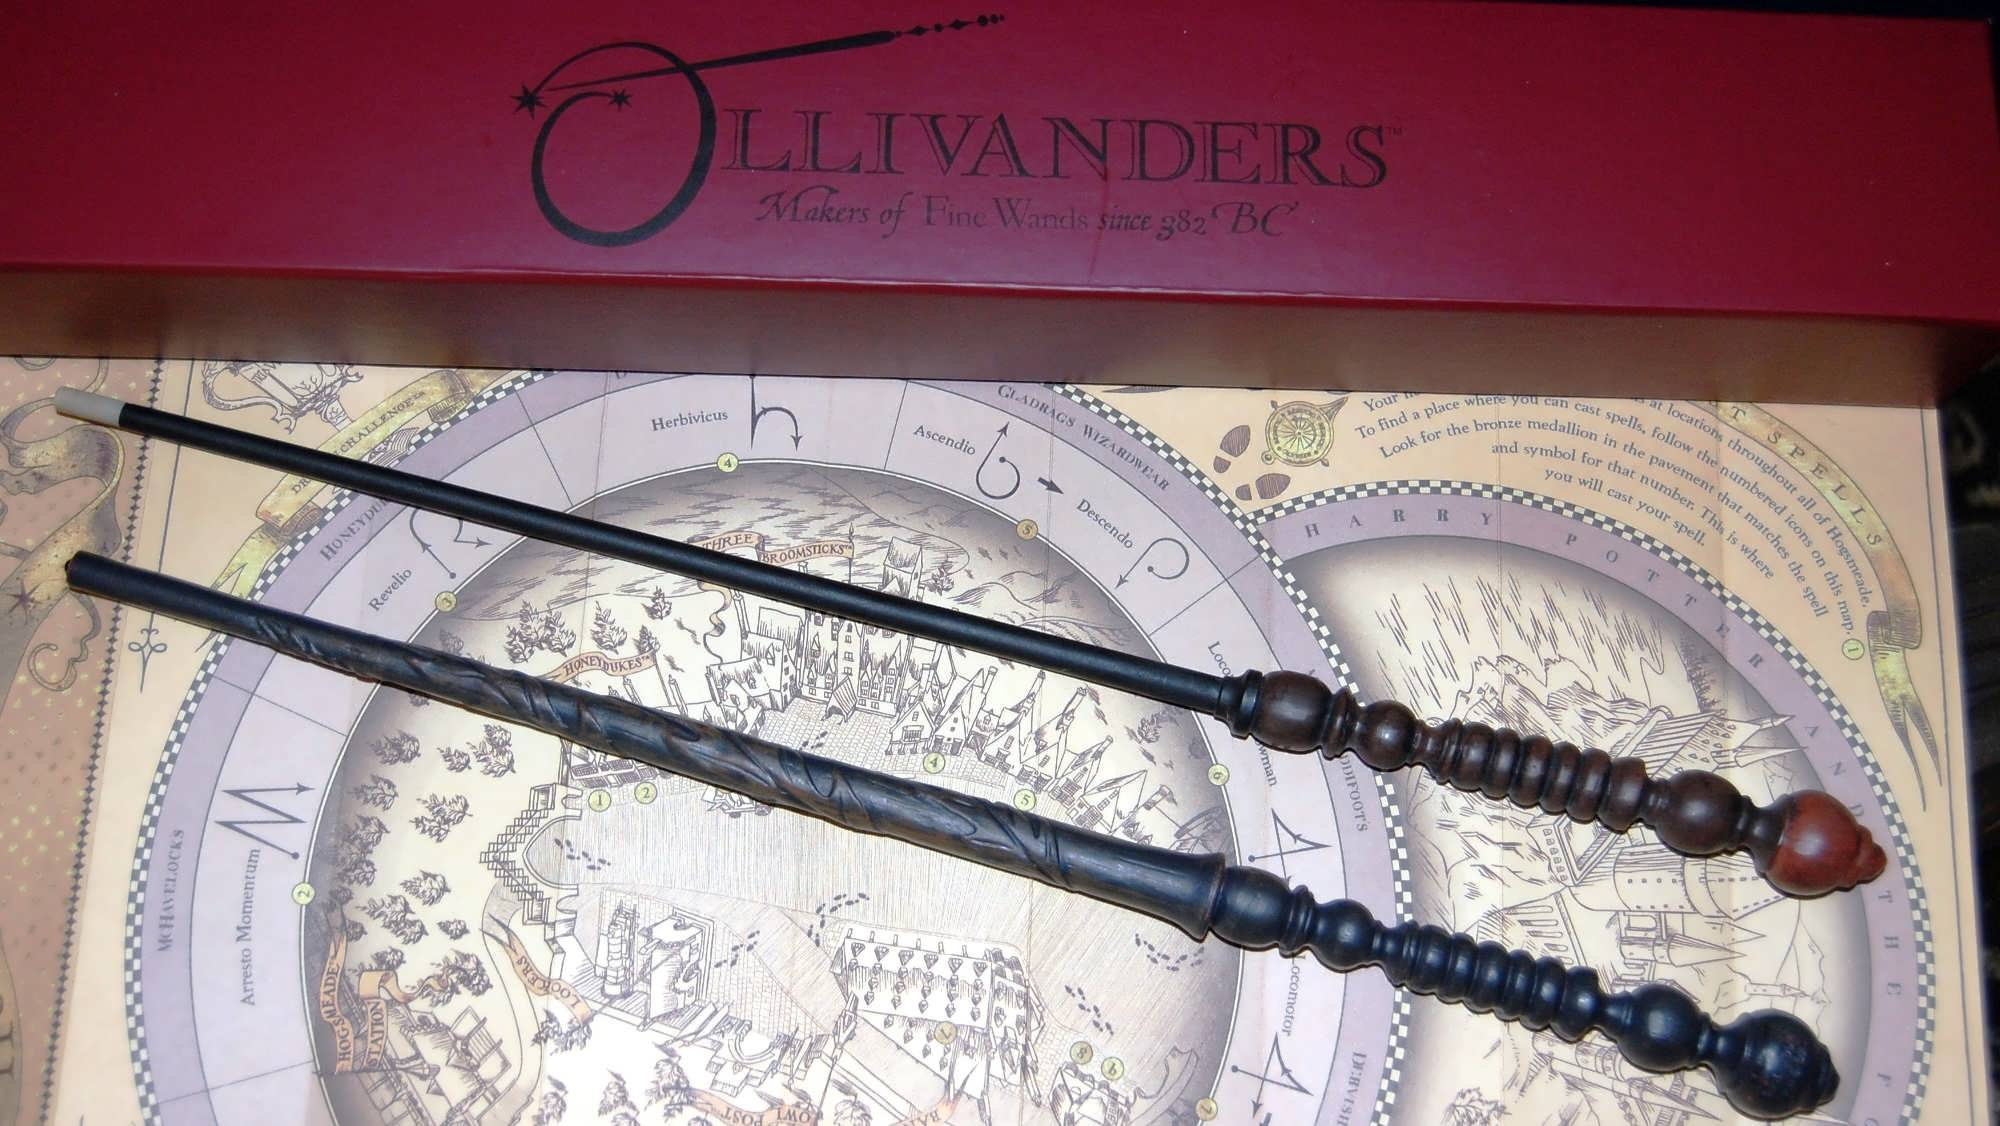 Comparing an old and an interactive wand